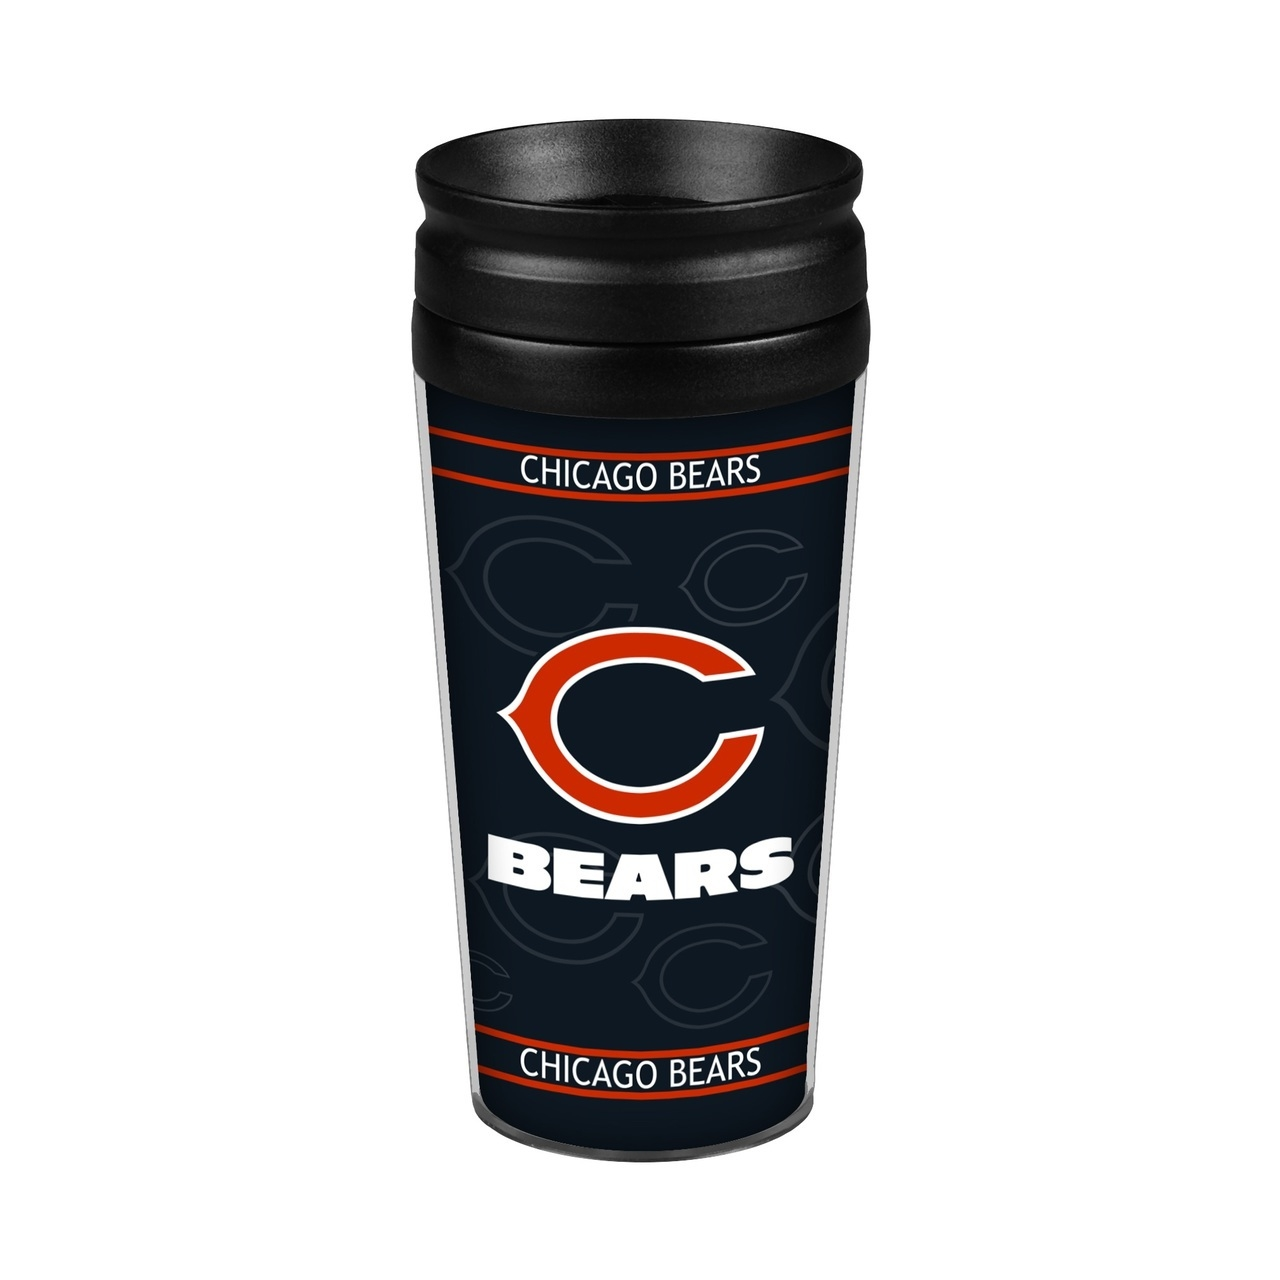 Chicago Bears 14oz. Full Wrap Travel Mug - 4736108800 - Nfl Football Chicago Bears Travel Mugs 4736108800